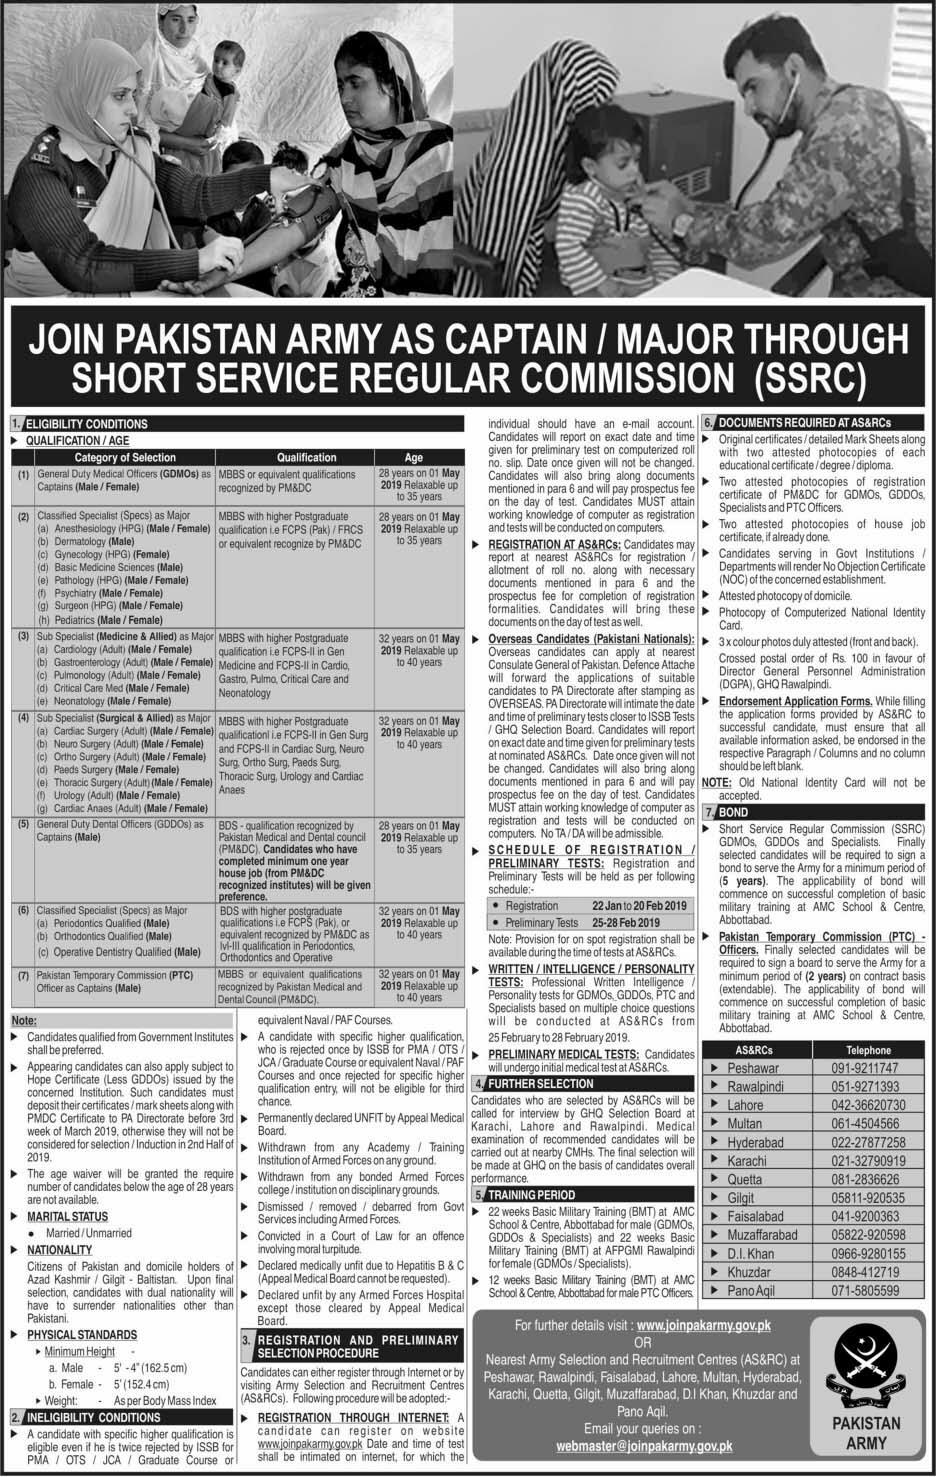 Join Pak Army As Captain (SSRC) 2019 | 650 New Vacancies | Major Through Short Service Regular Commission